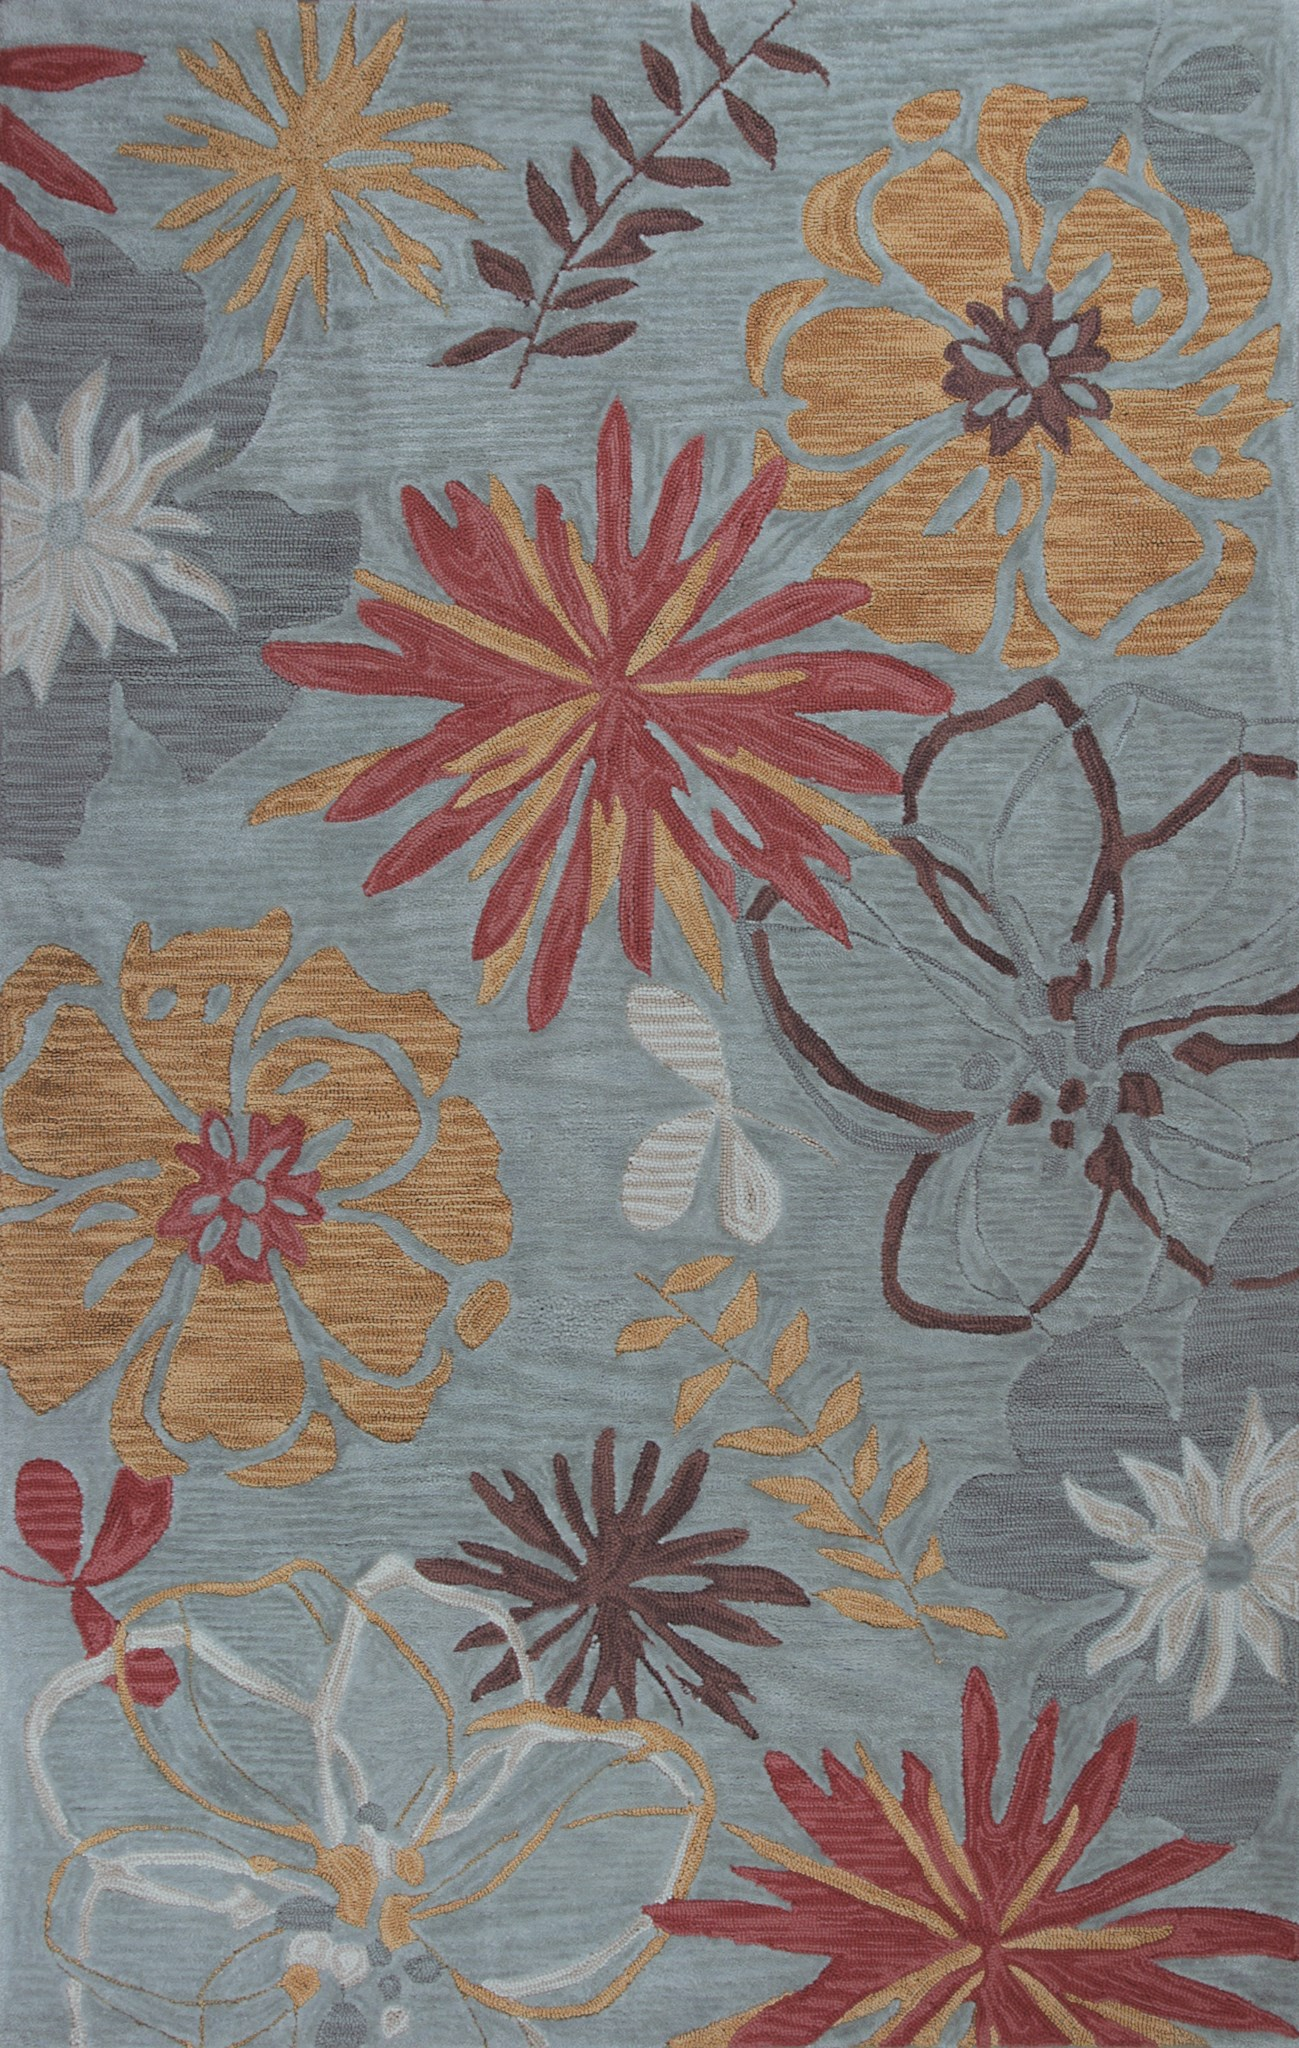 Anise 2415 Ocean Wildflowers